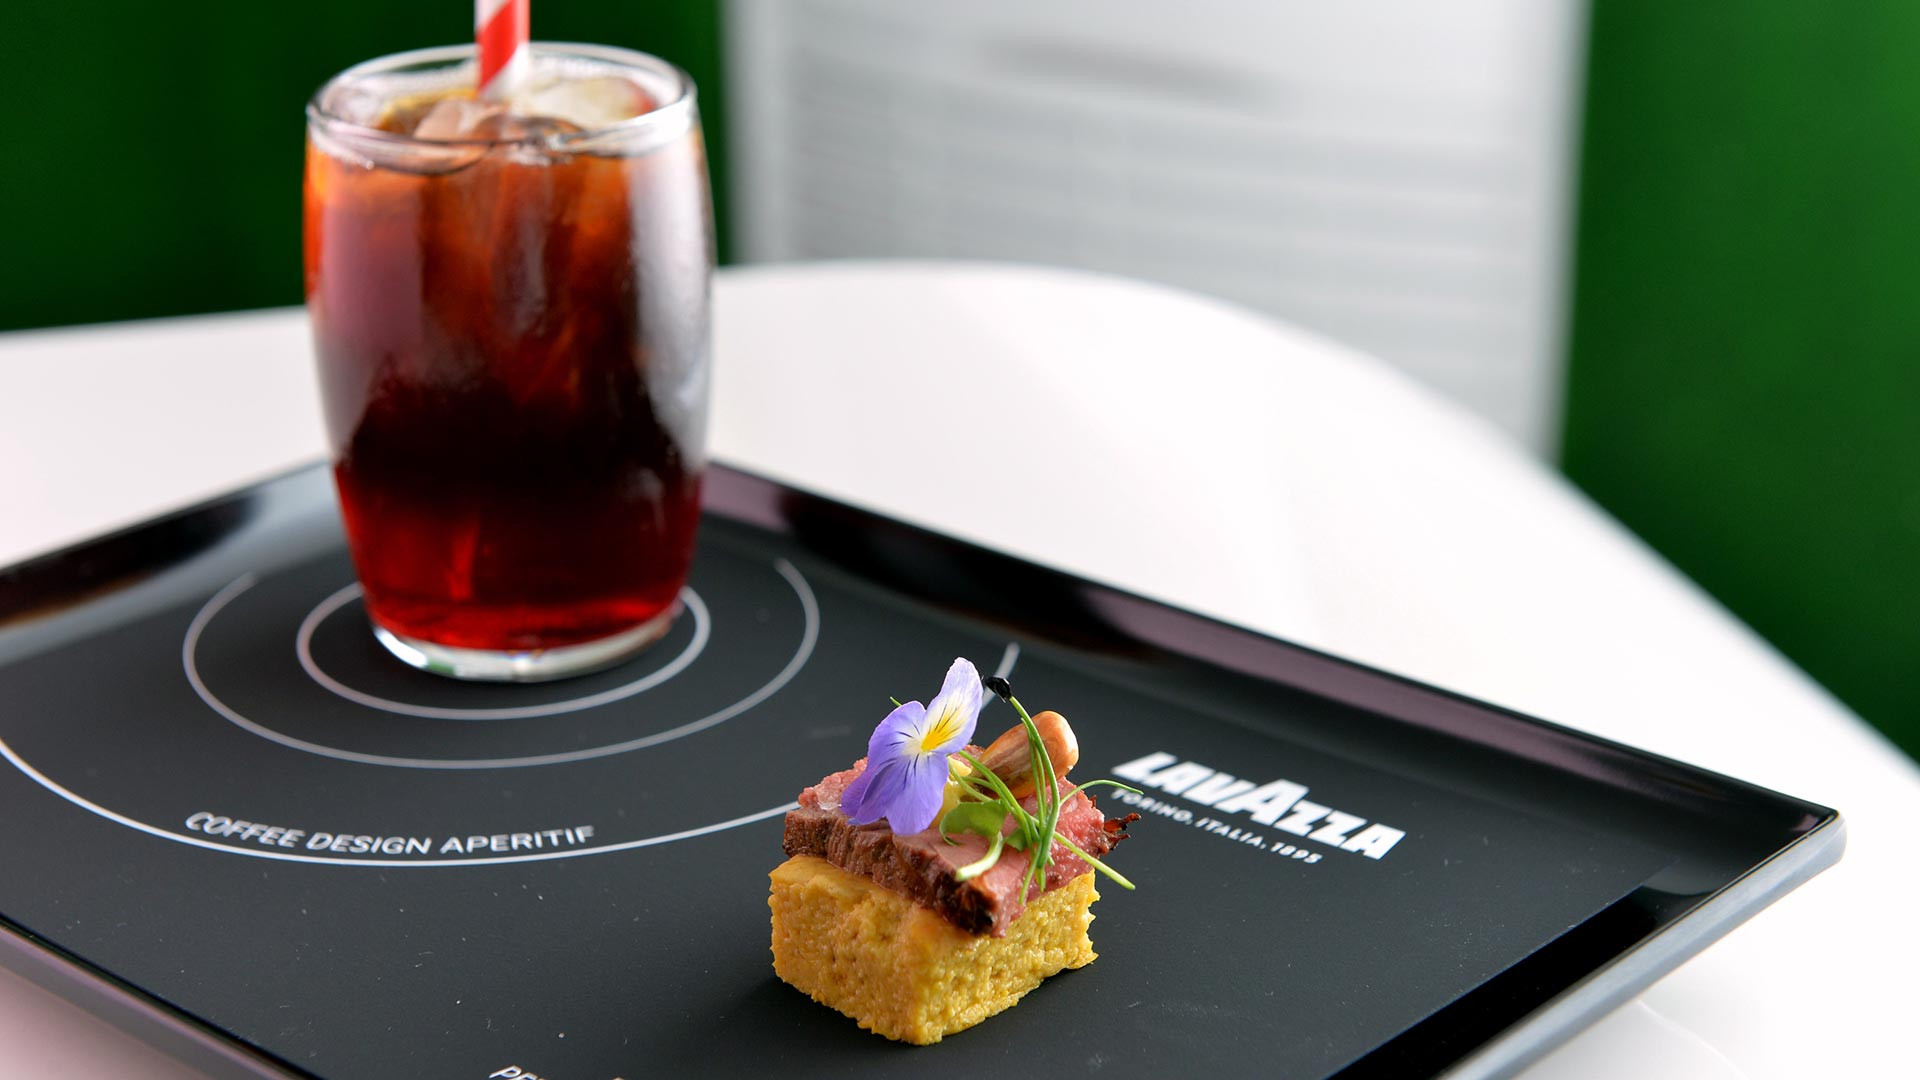 Peruvian anticuchos, the coffee design apertif by head chef of LIMA Robert Ortiz